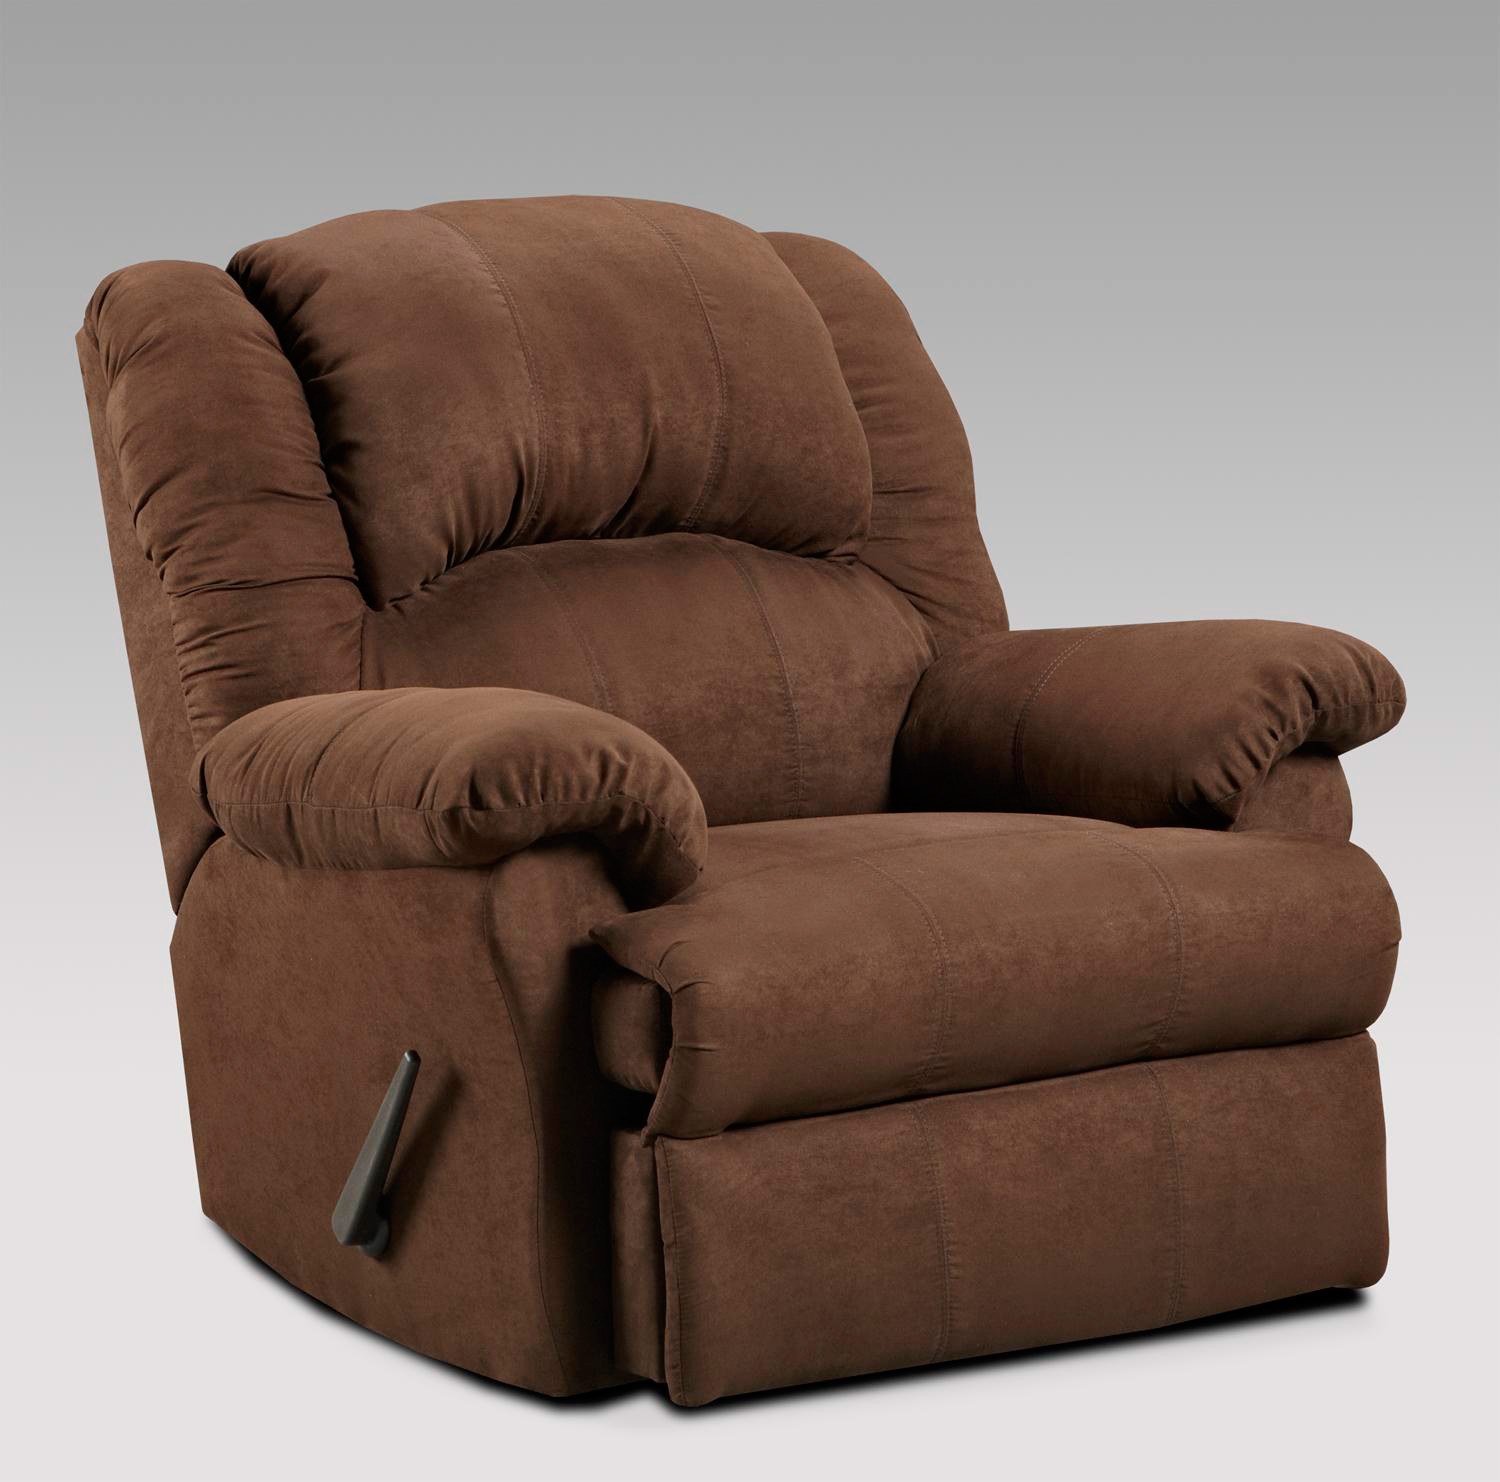 chelsea home ambrose chaise rocker recliner aruba. Black Bedroom Furniture Sets. Home Design Ideas